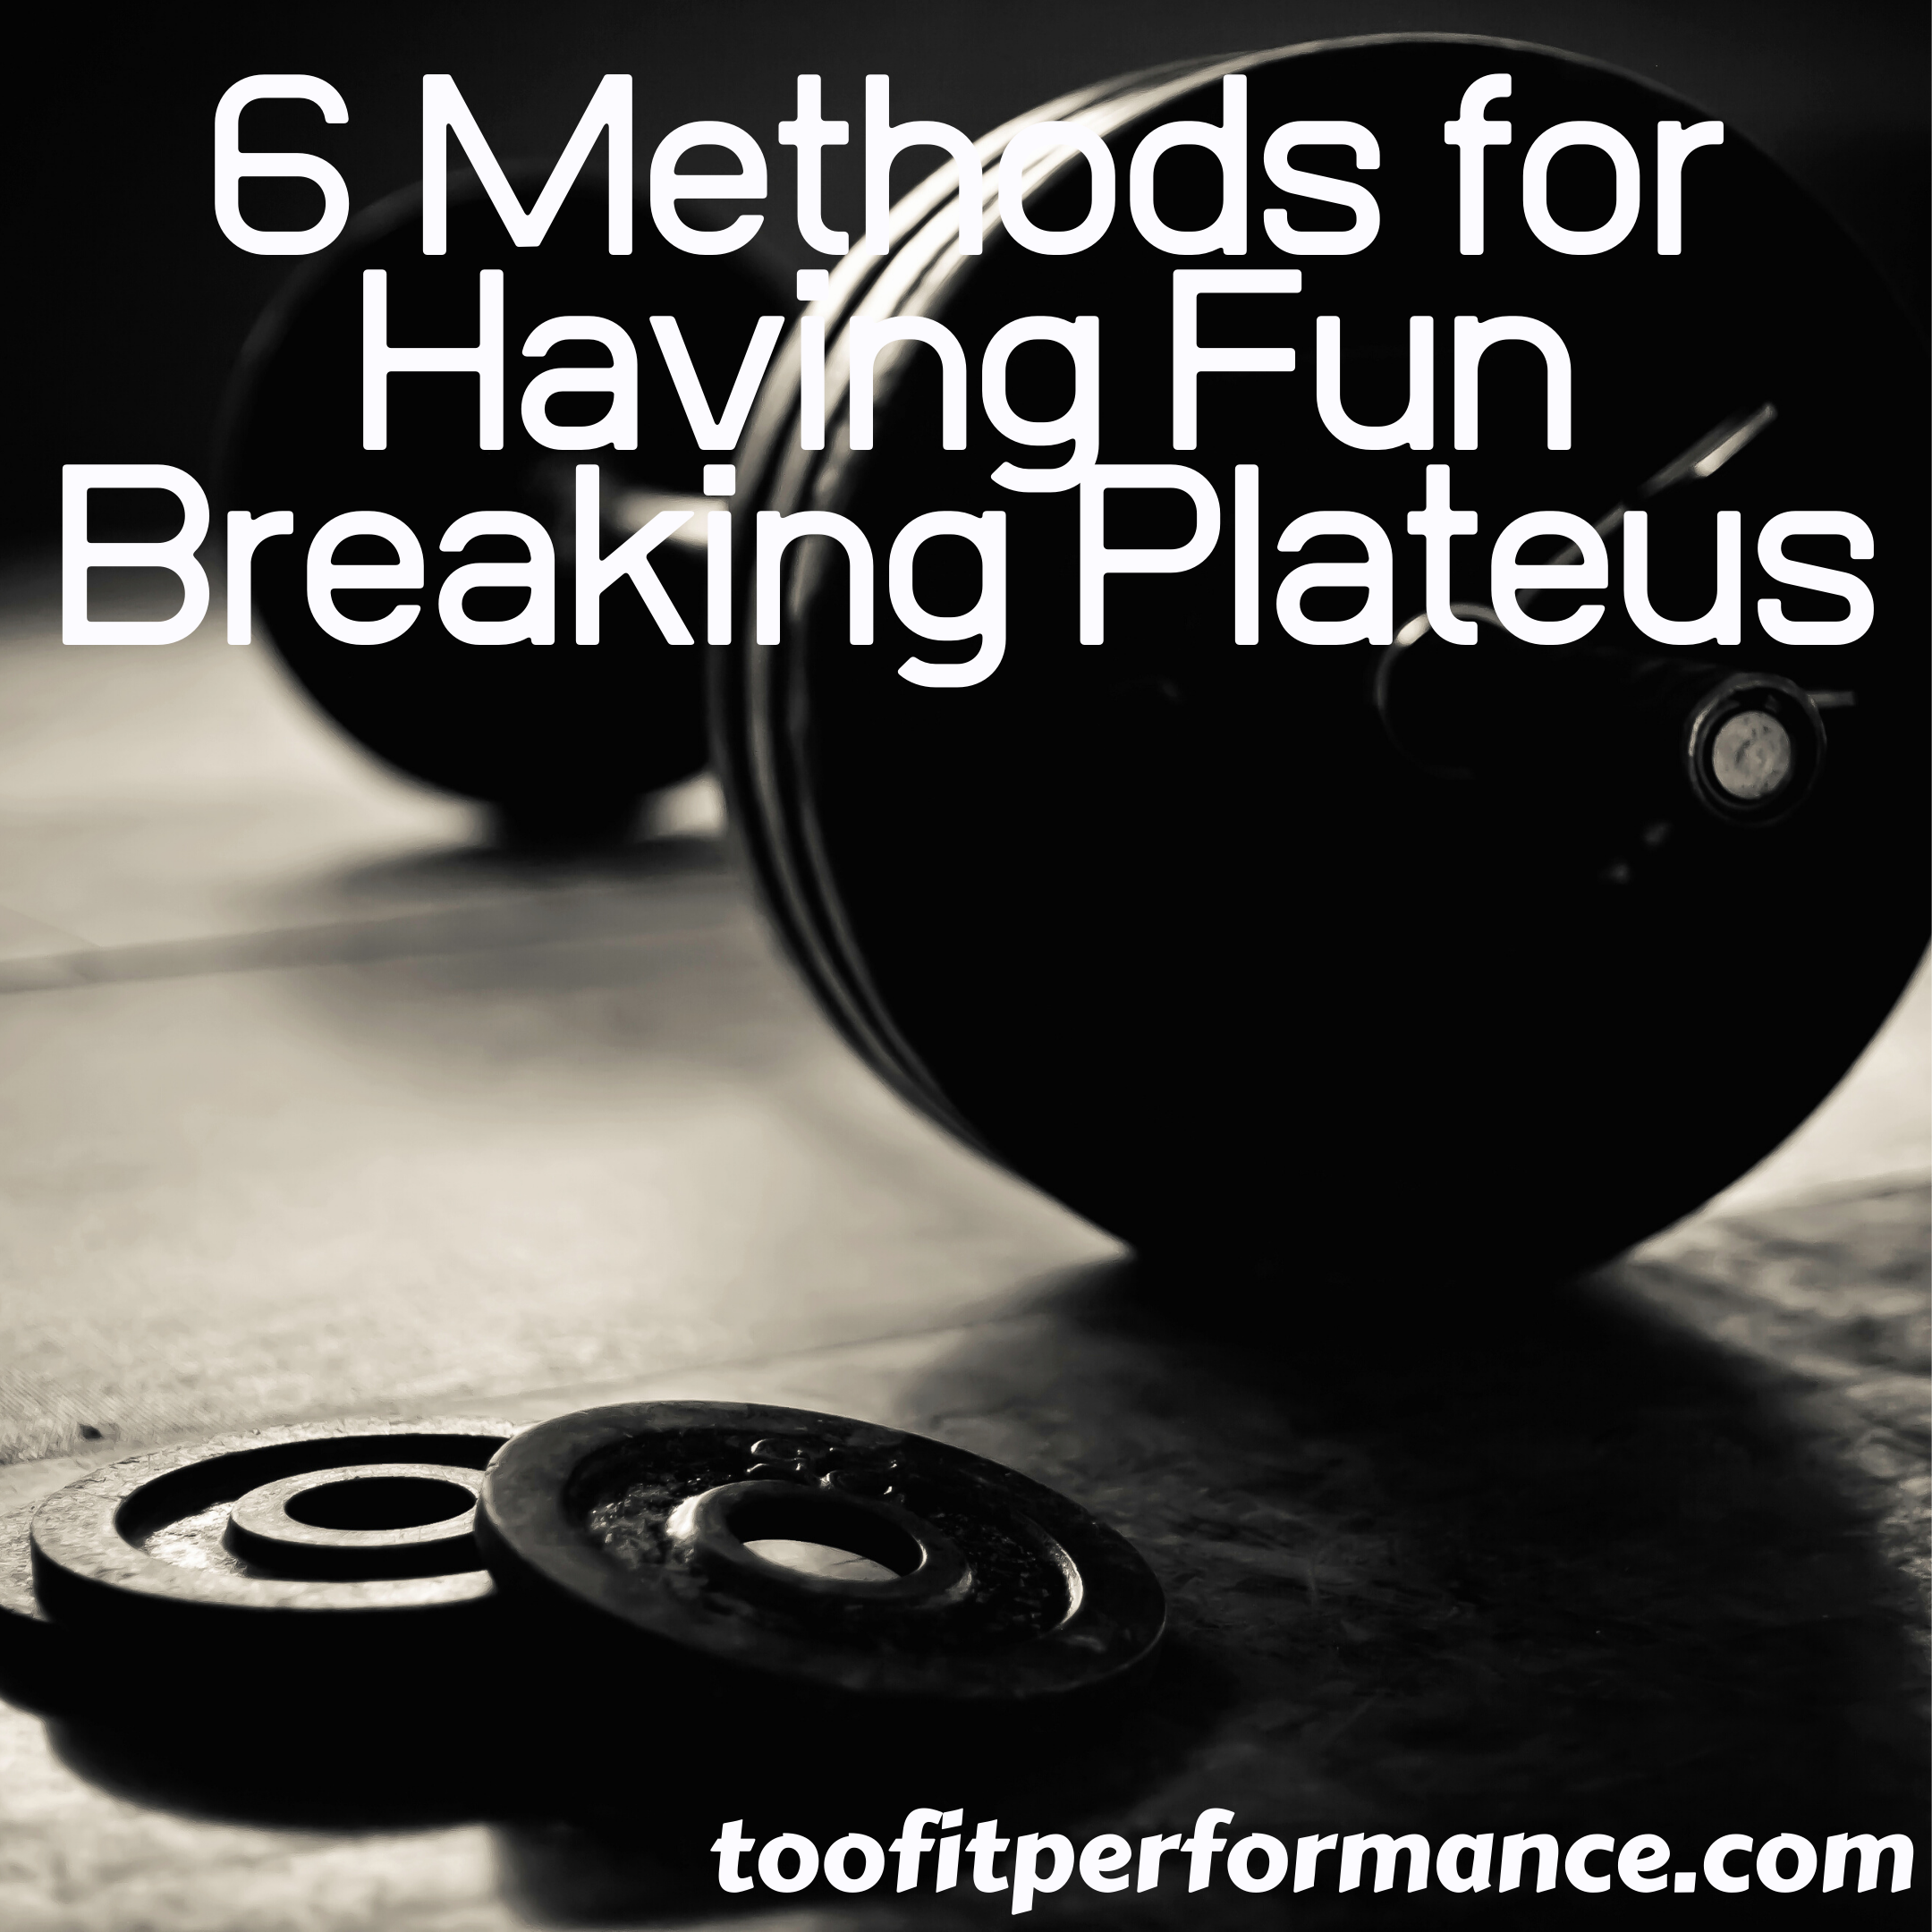 6 Methods for Having Fun Breaking Plateaus